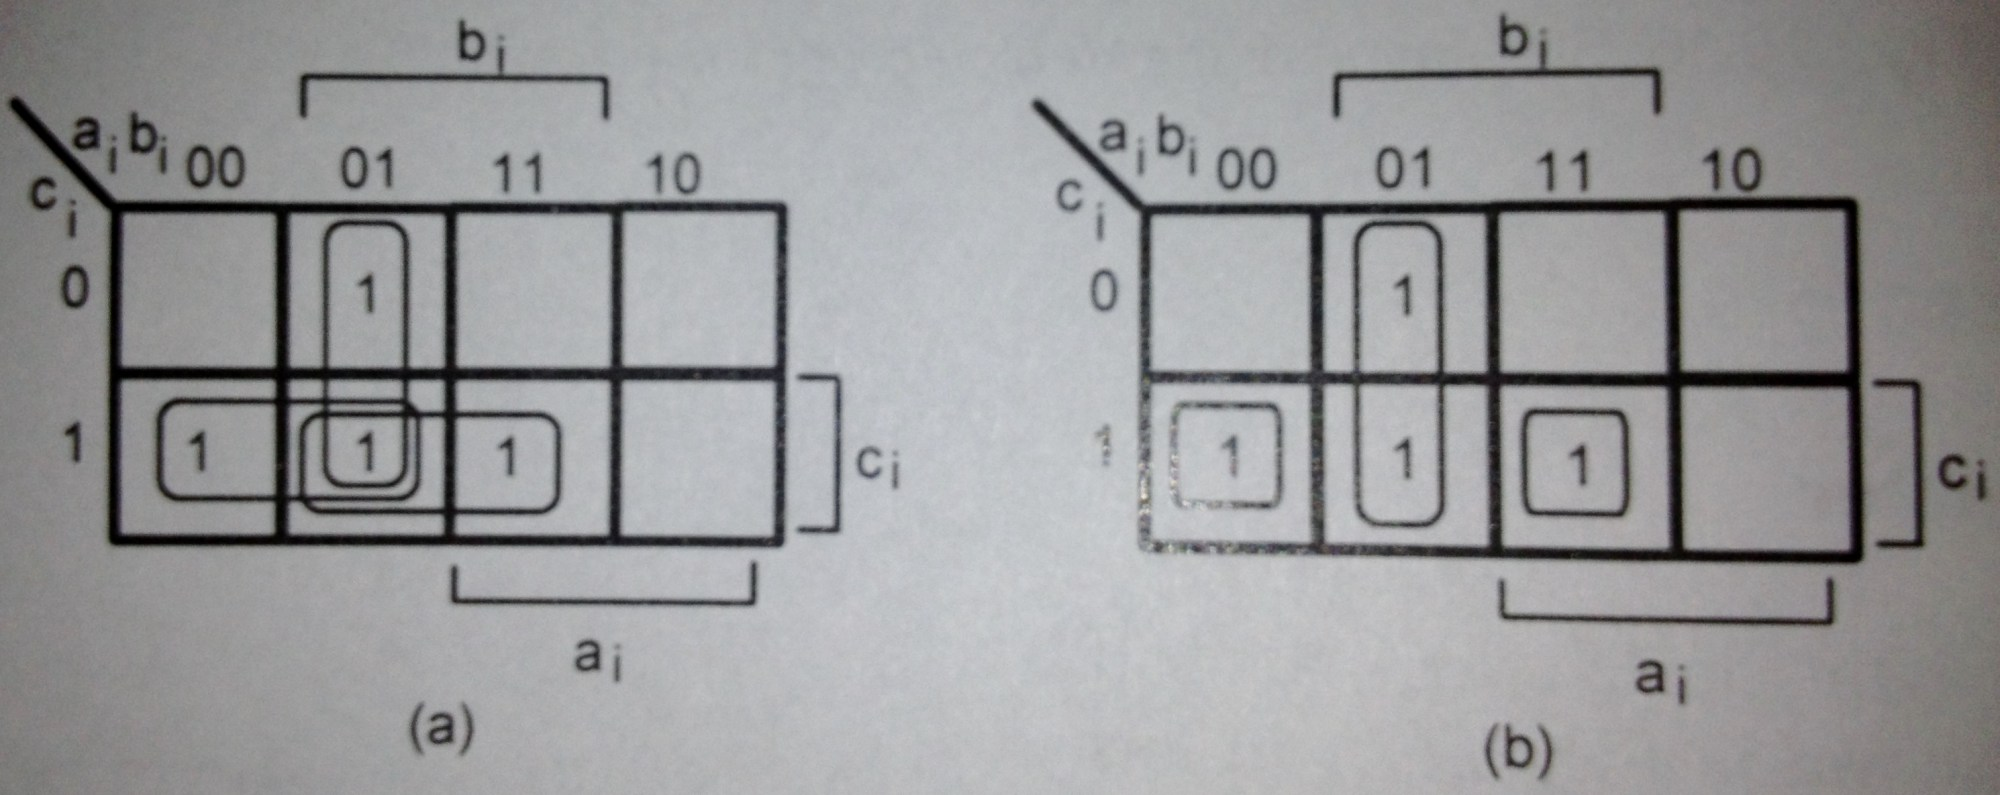 hight resolution of fig 6 19 below is the logic diagram